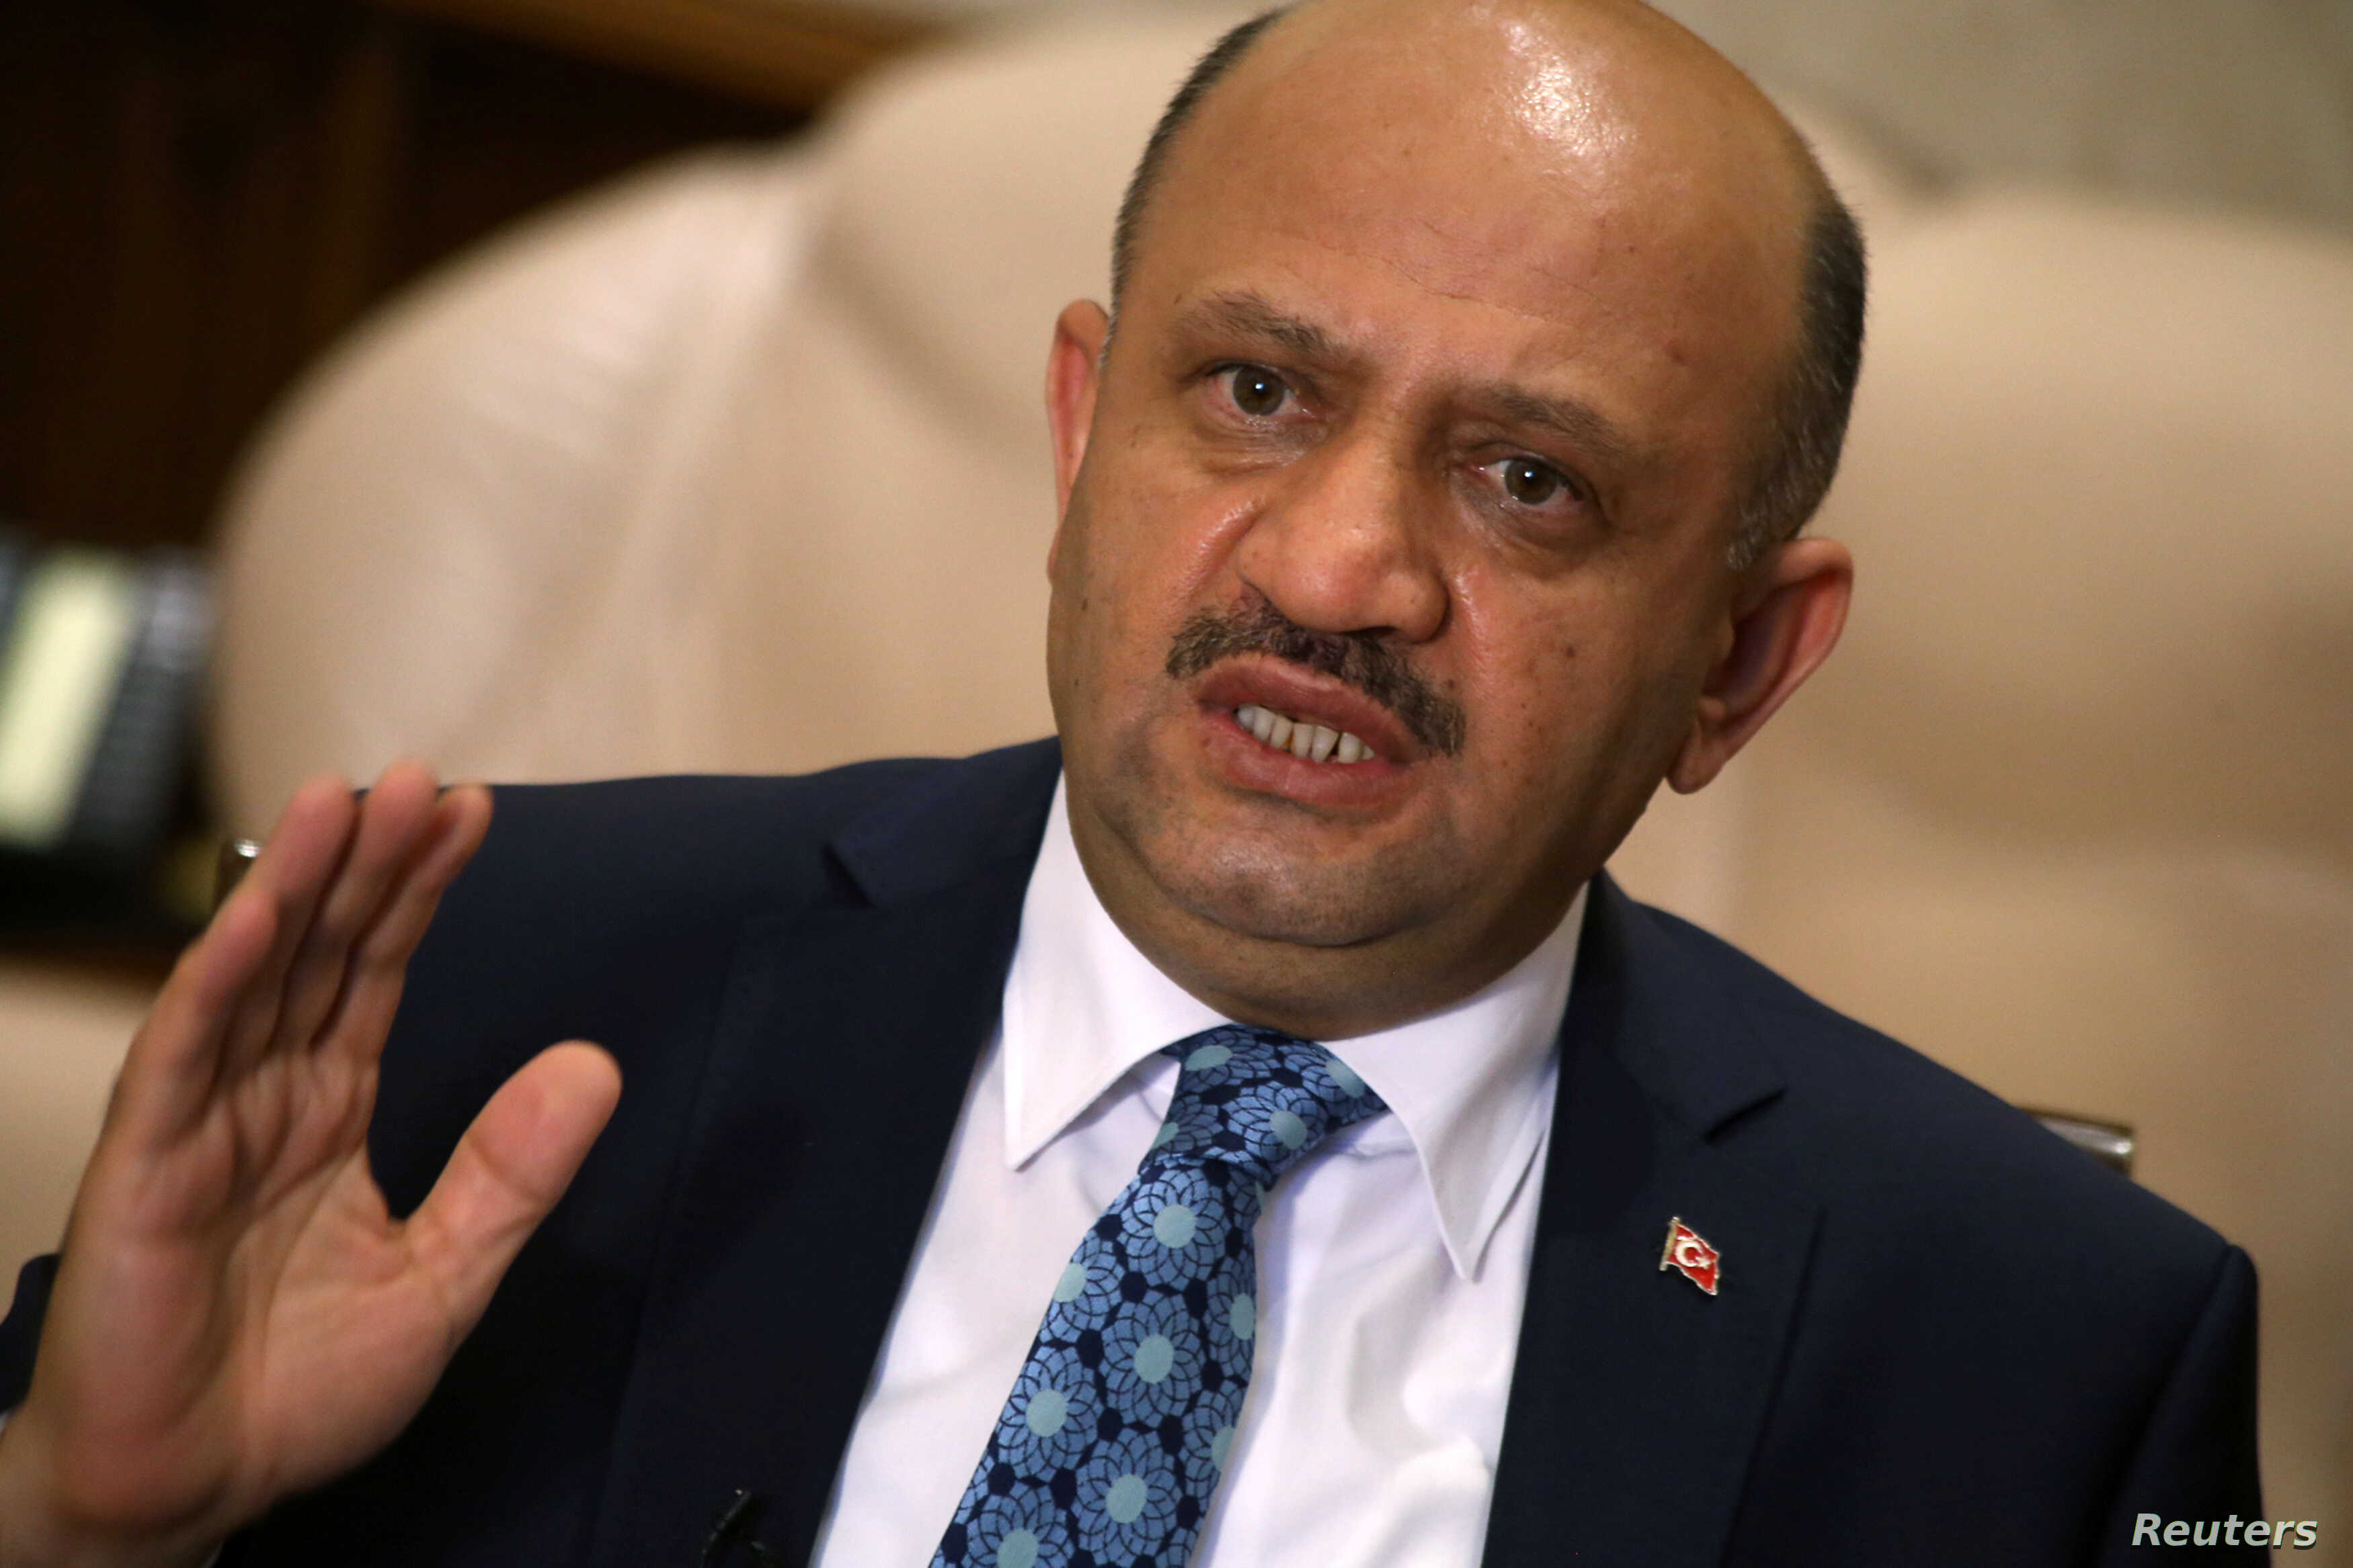 Turkey's Defence Minister Fikri Isik answers a question during an interview in Ankara, Aug. 5, 2016.